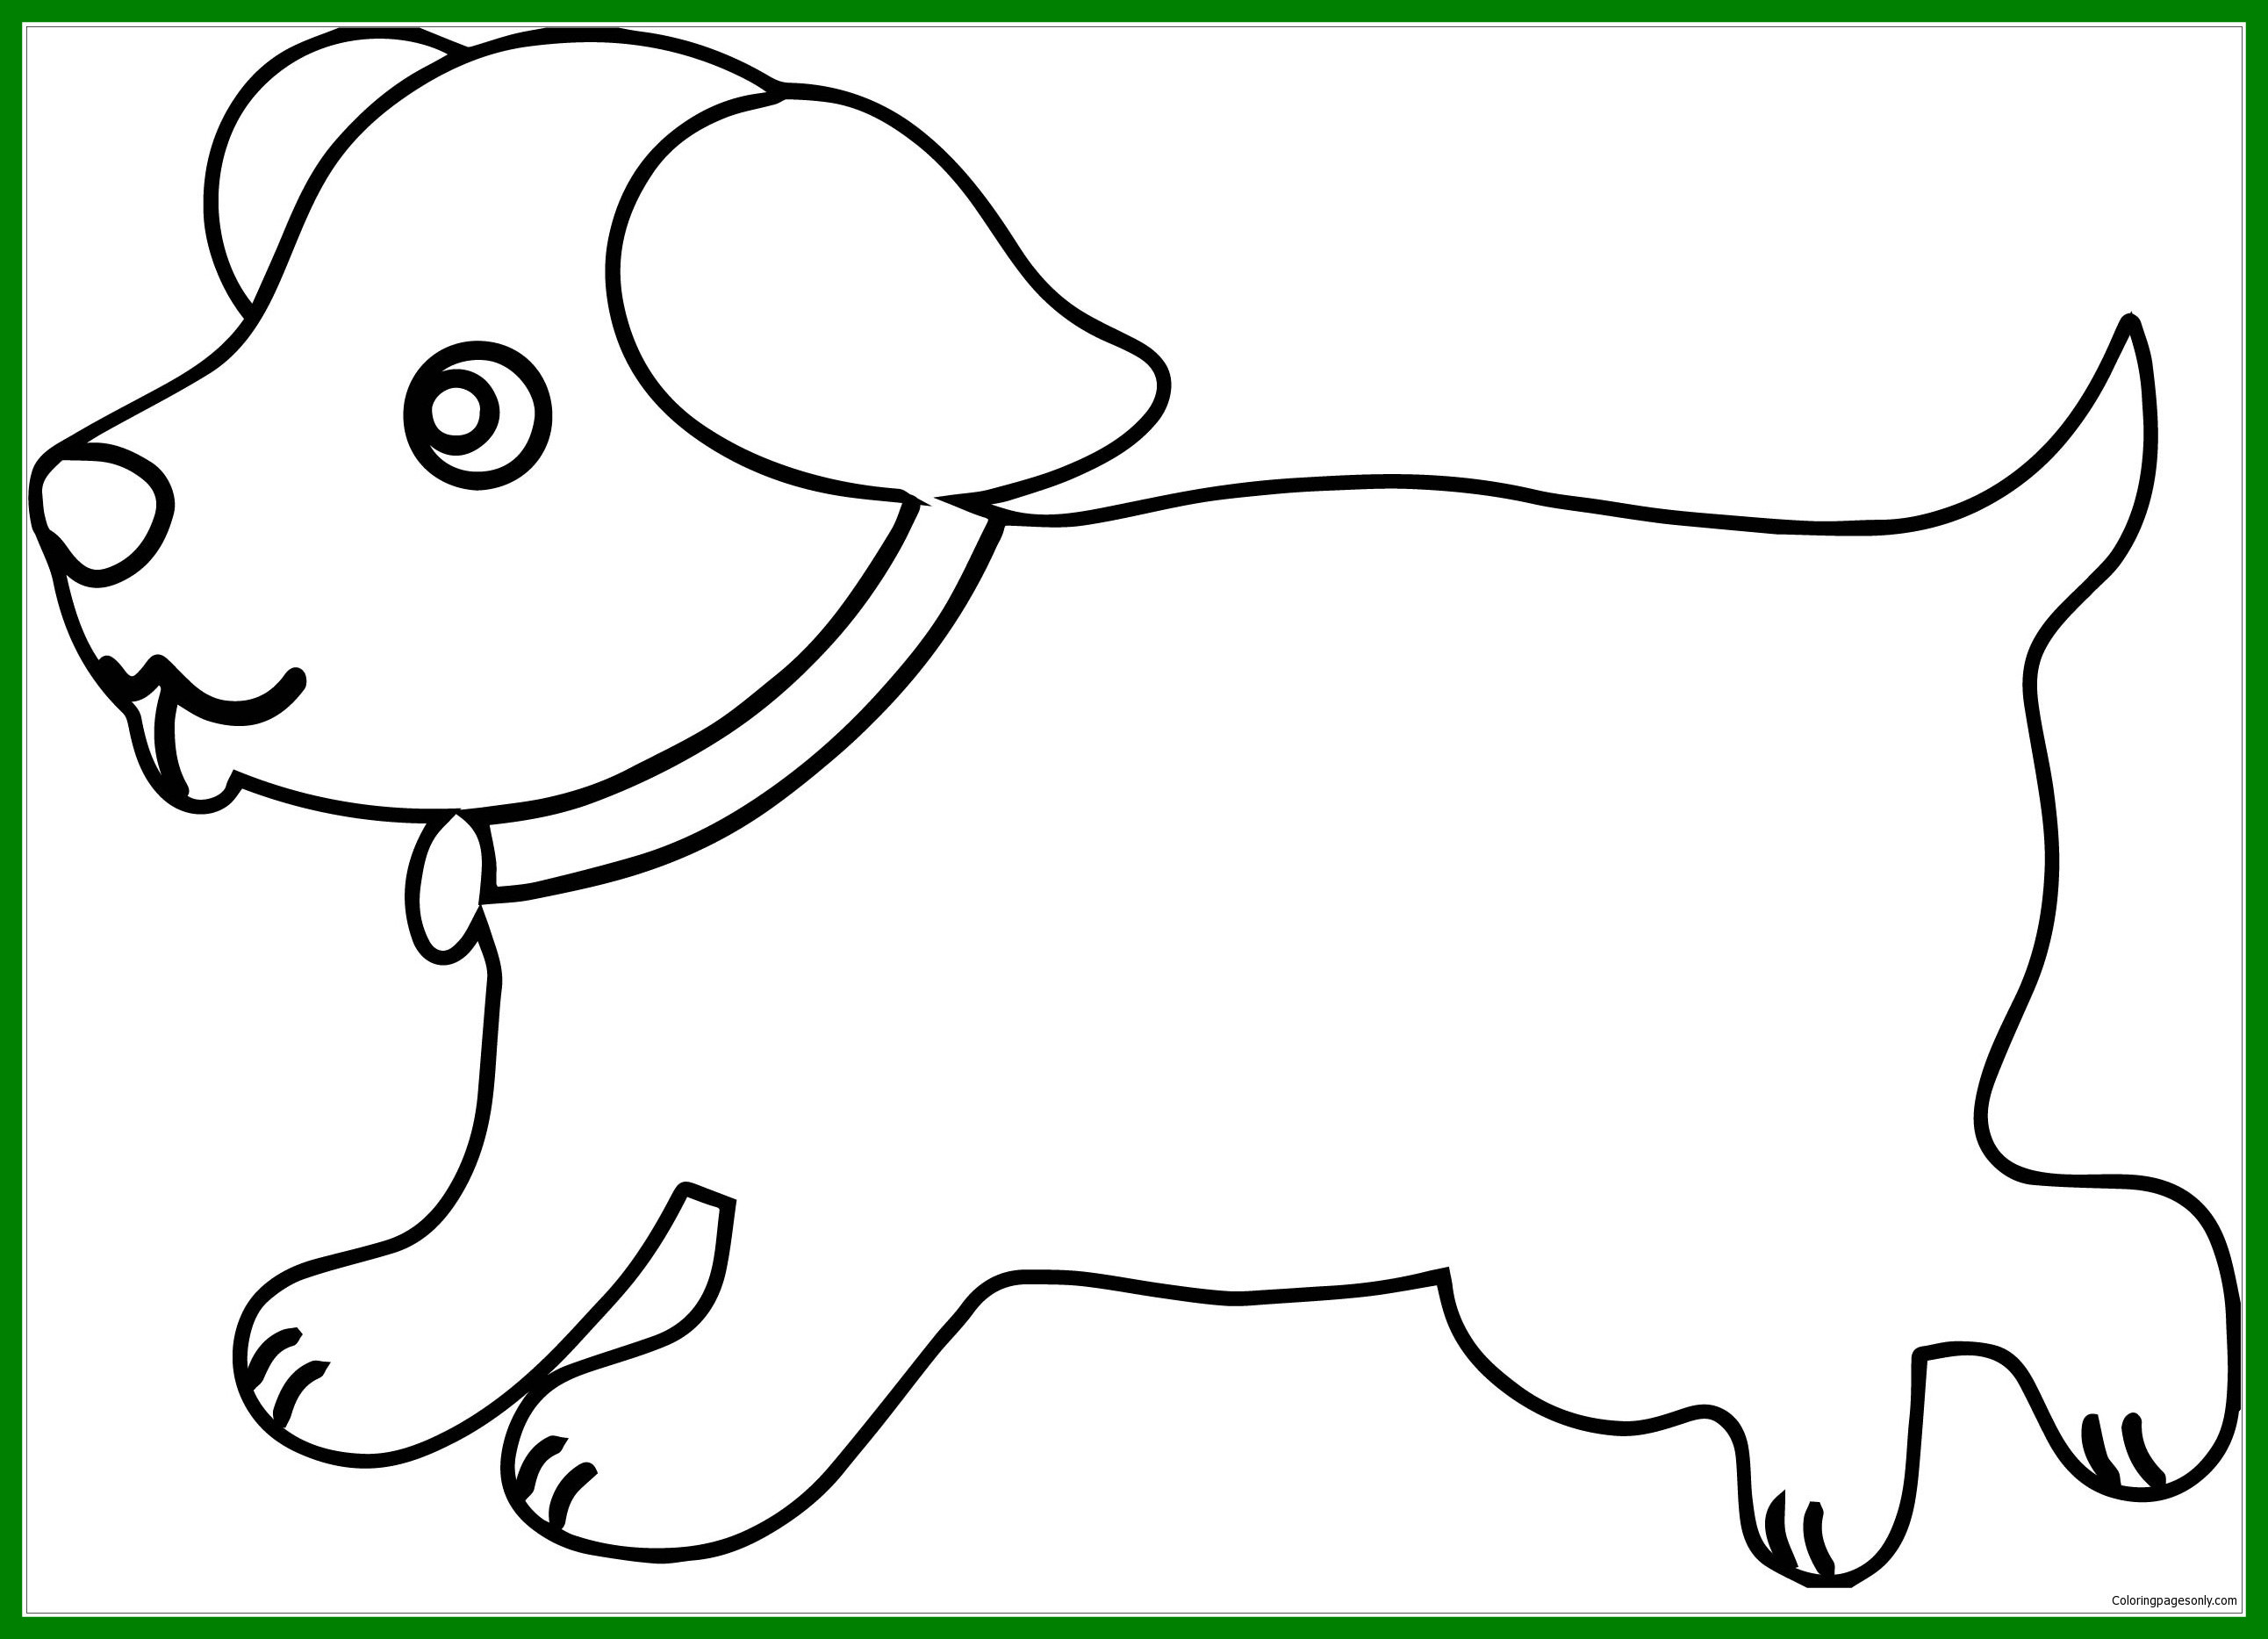 2584x1867 Astonishing Puppy Outline Dog Coloring Page Online Of Ideas